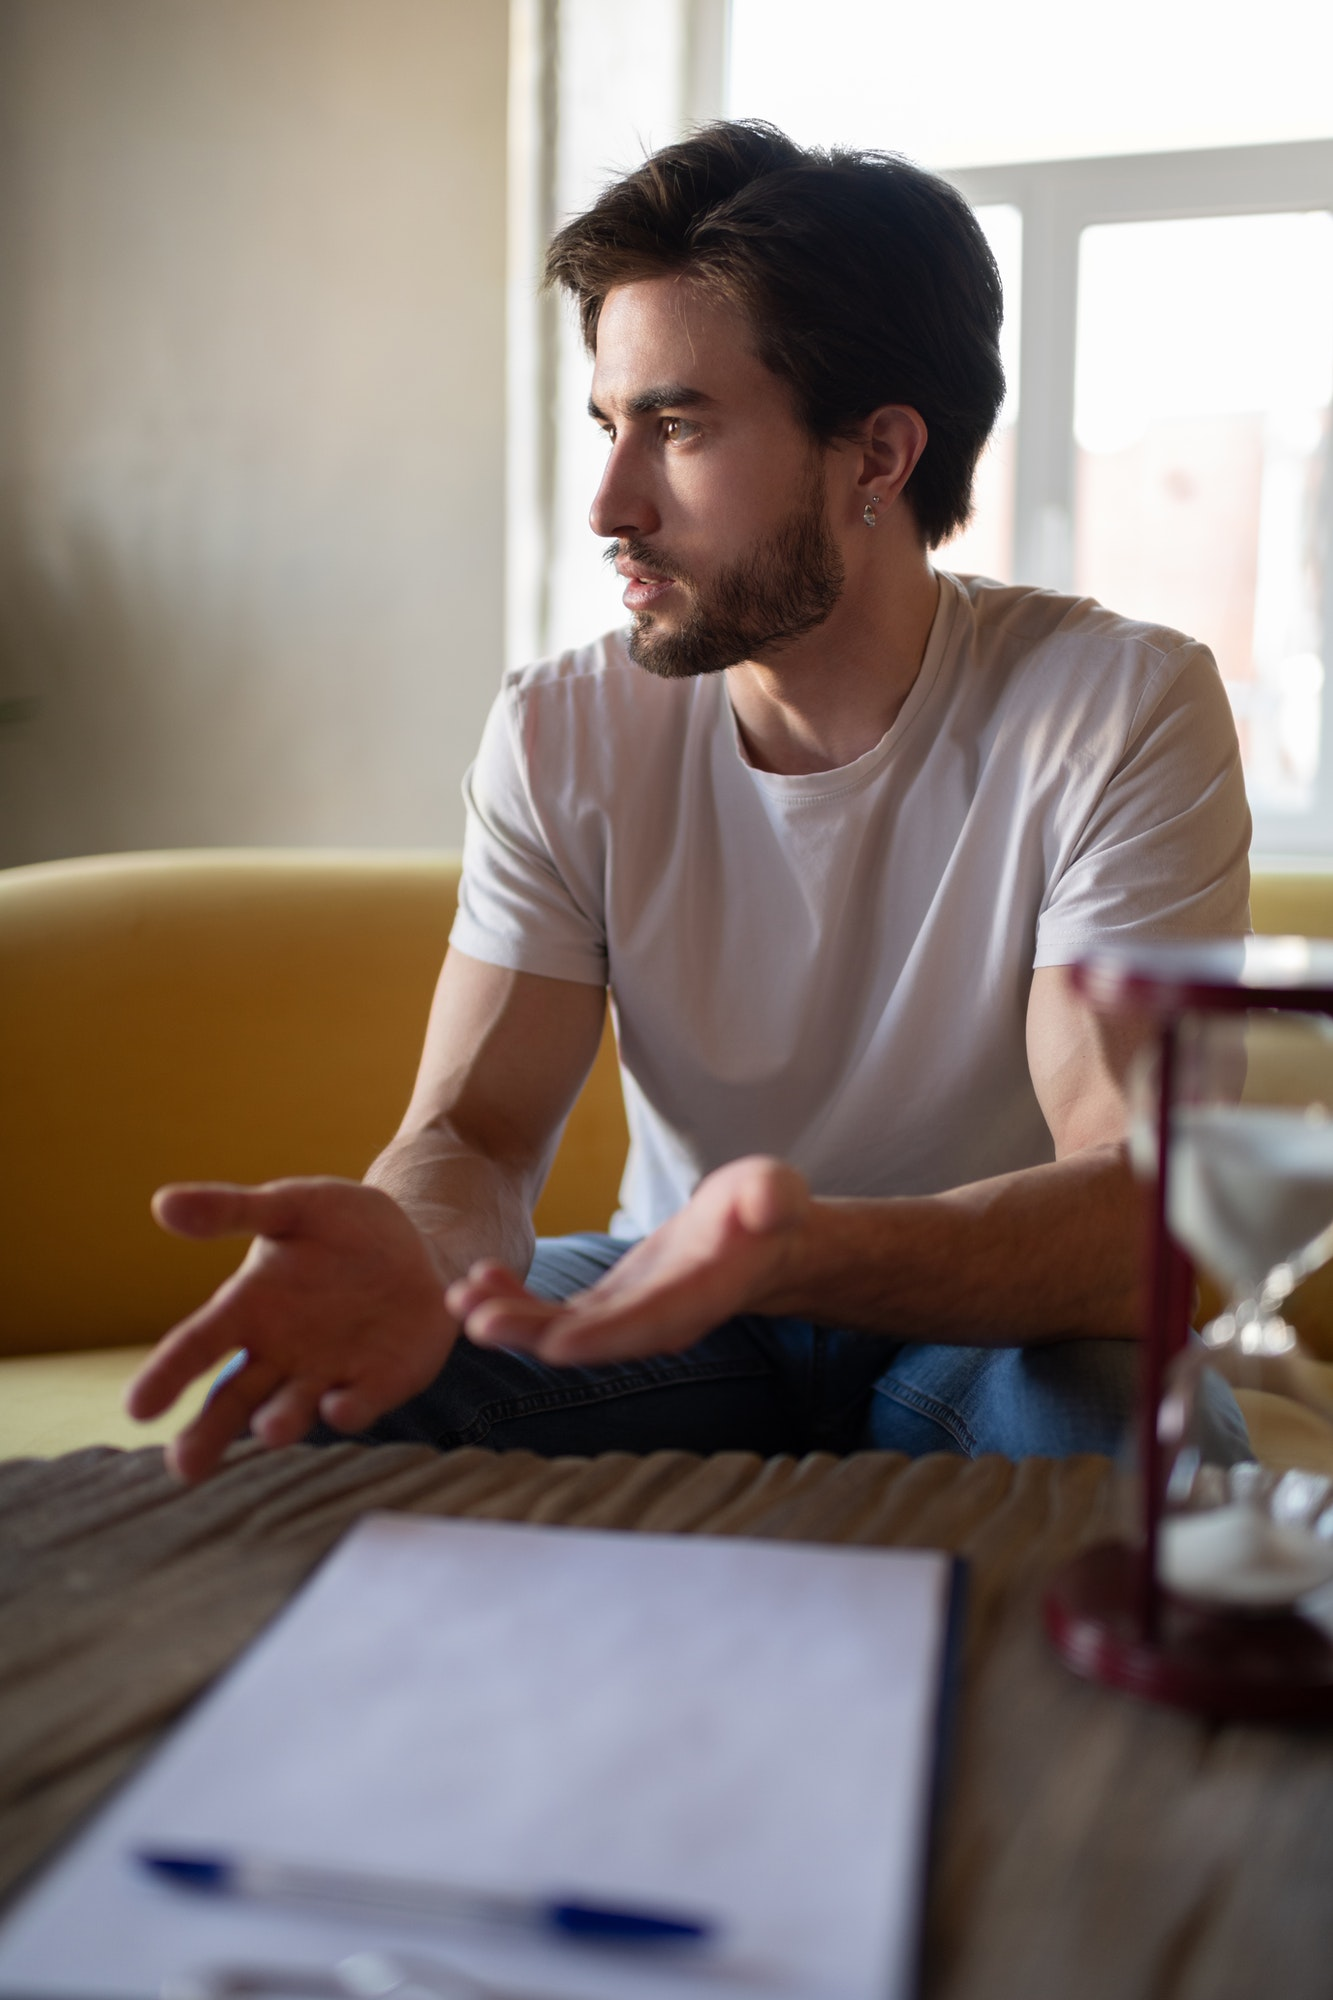 Serious man discussing mental issues during psychotherapy session